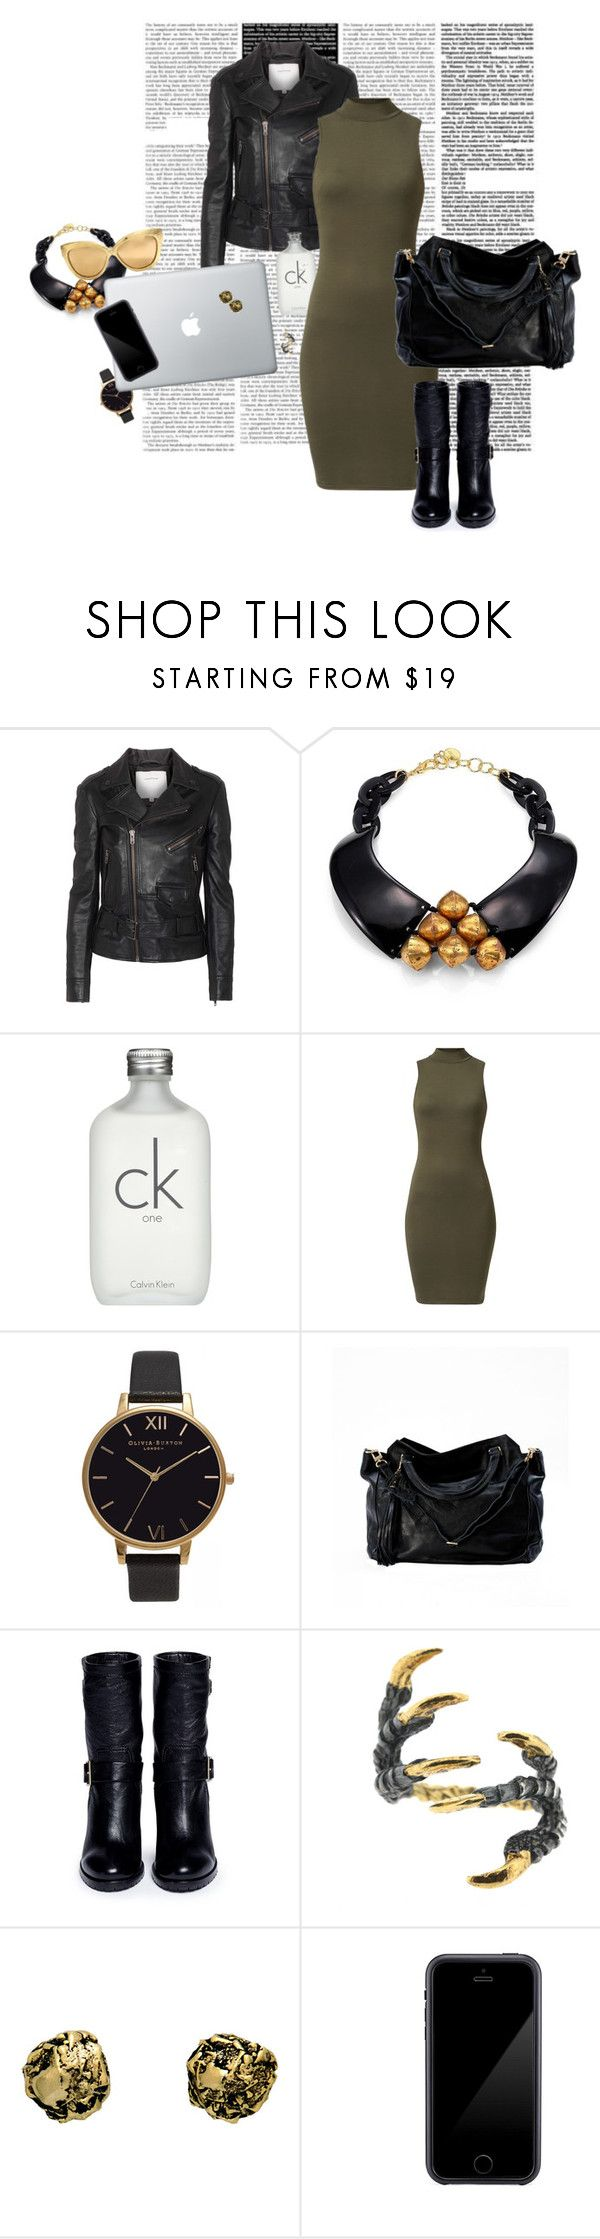 """""""High neck dress"""" by nastiarl ❤ liked on Polyvore featuring Surface To Air, Nest, Calvin Klein, Olivia Burton, Jimmy Choo, Tessa Metcalfe, Kamryn Dame, Squair, Linda Farrow and gold"""